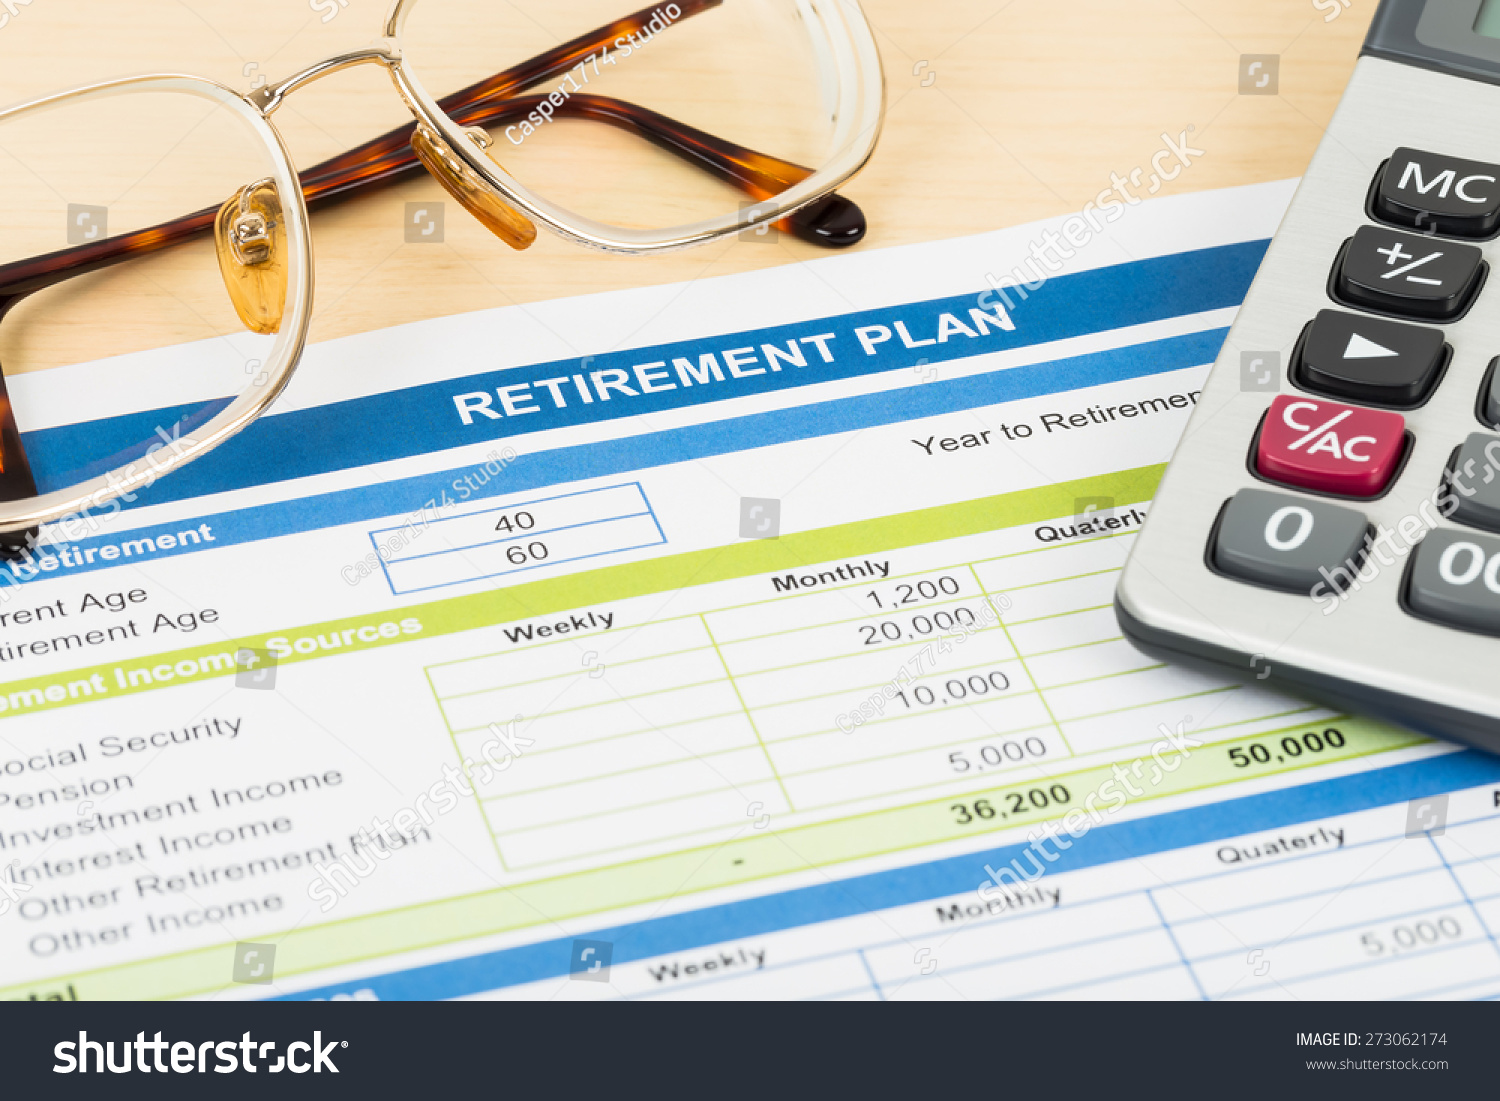 Best Retirement Plans: Choose The Right Plan For You U2026 Trends In Retirement  Programs And Income Dallas Salisbury, President U0026 CEO Employee Benefit  Research ...